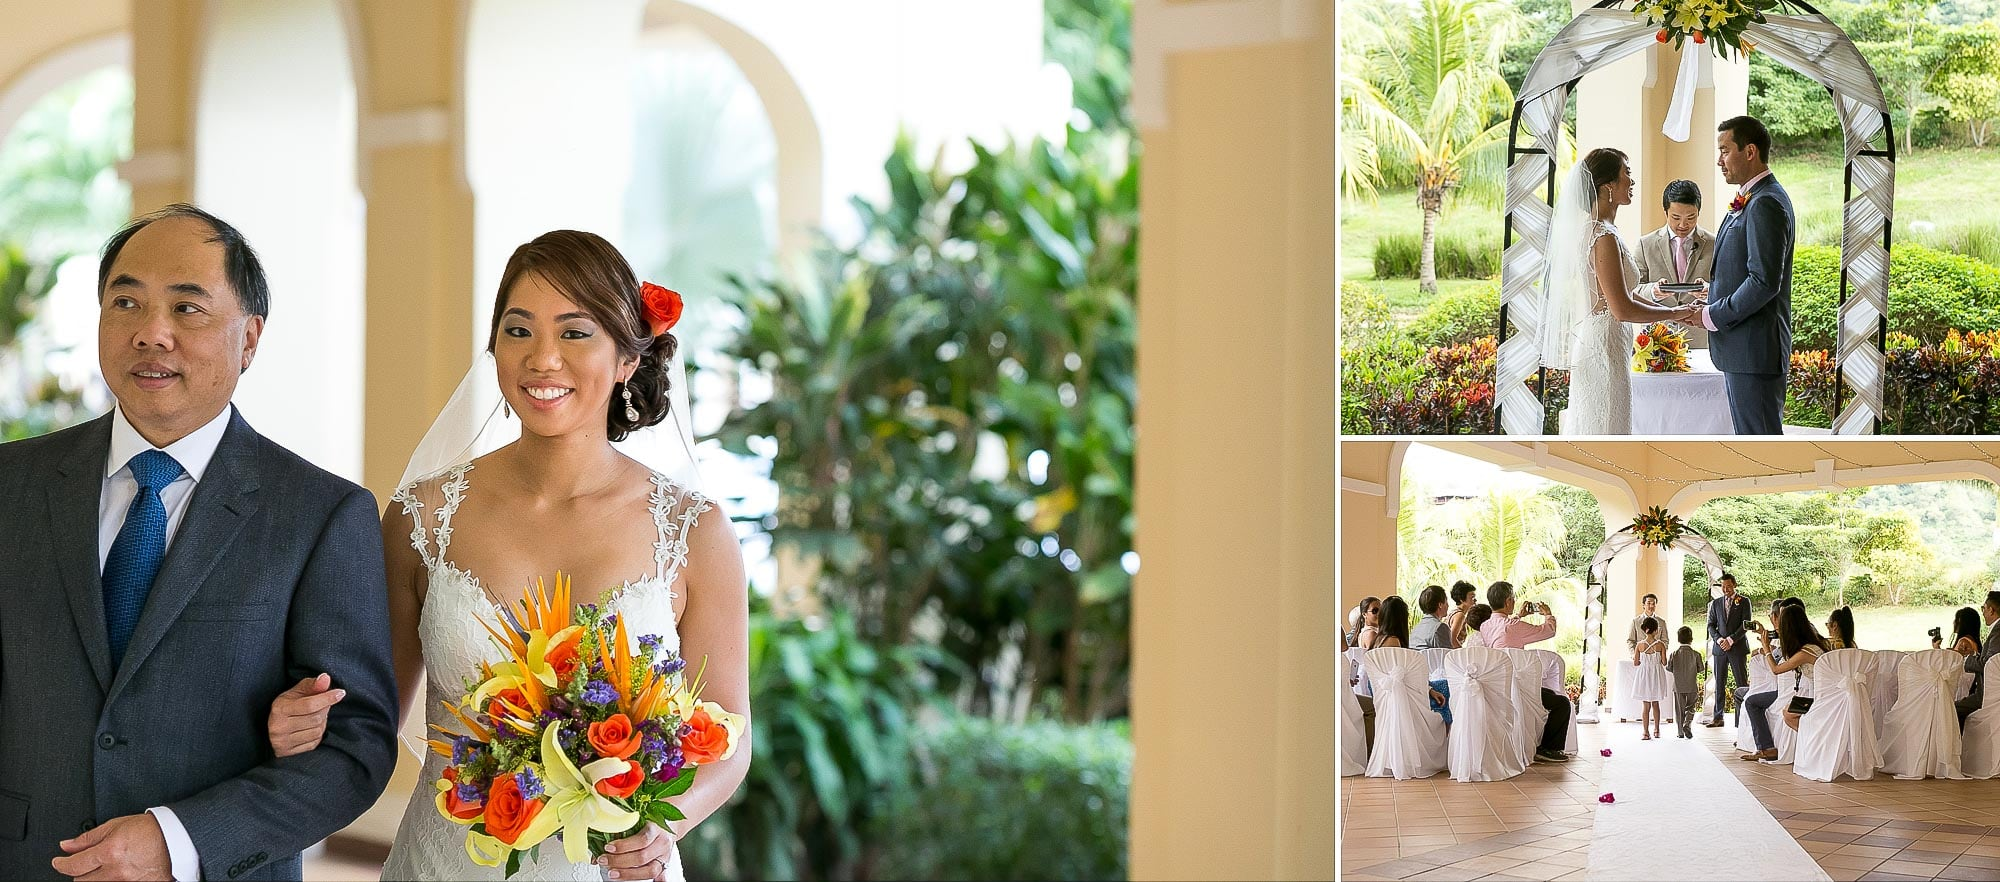 wedding ceremony in garden terrace at riu palace costa rica